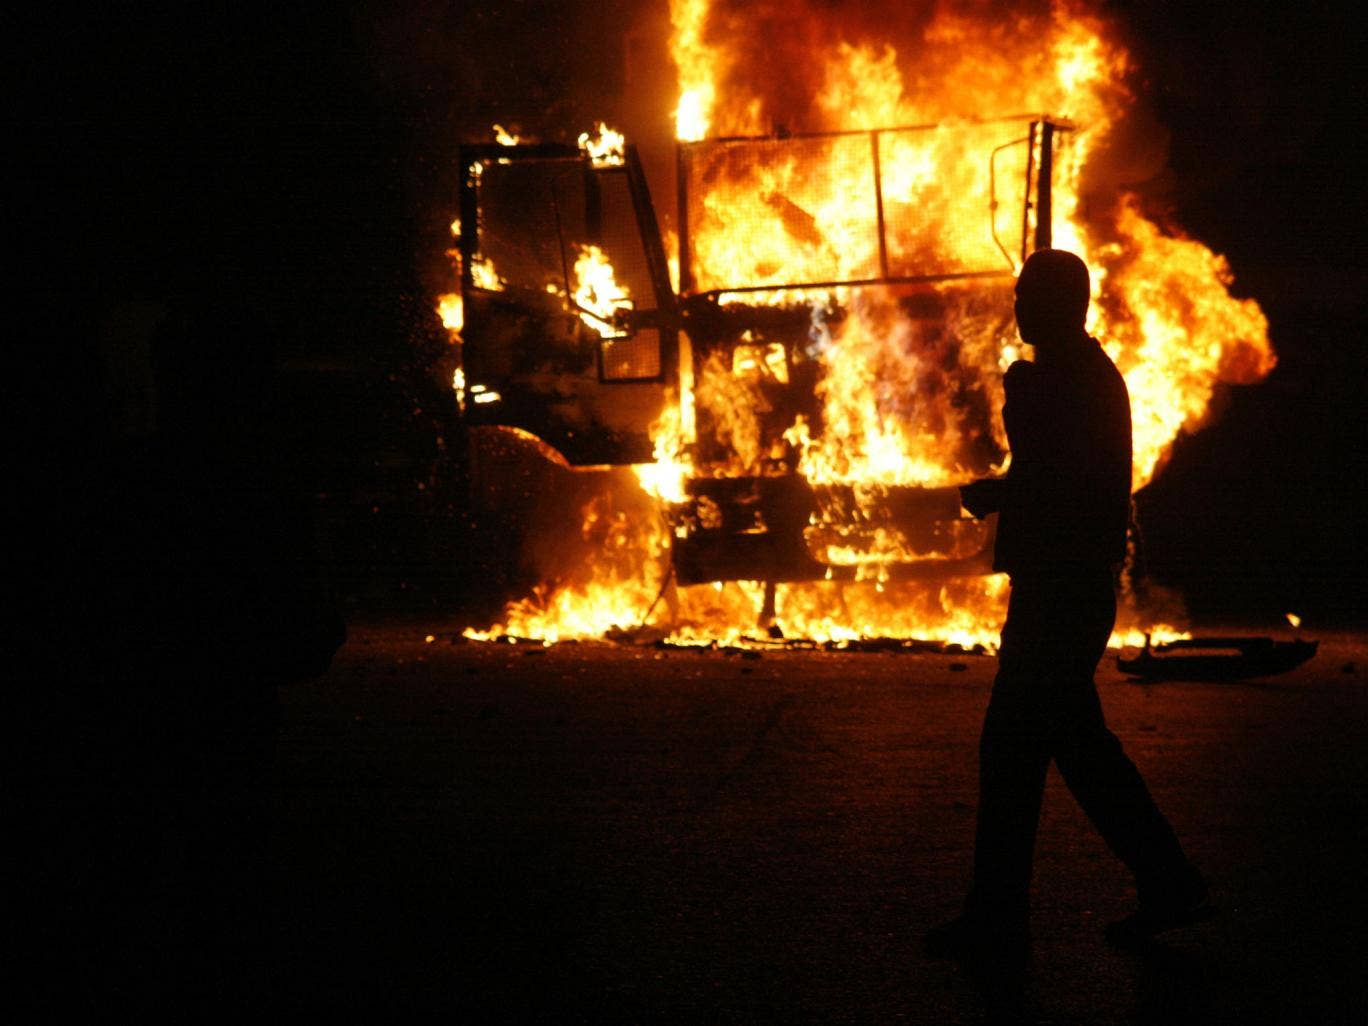 An Egyptian man walks by a burning Egyptian police truck during a demonstration against Egypt's Islamist President Mohamed Morsi on November 23, 2012 in Cairo. Morsi insisted that Egypt is on the path to 'freedom and democracy' after granting himself swee